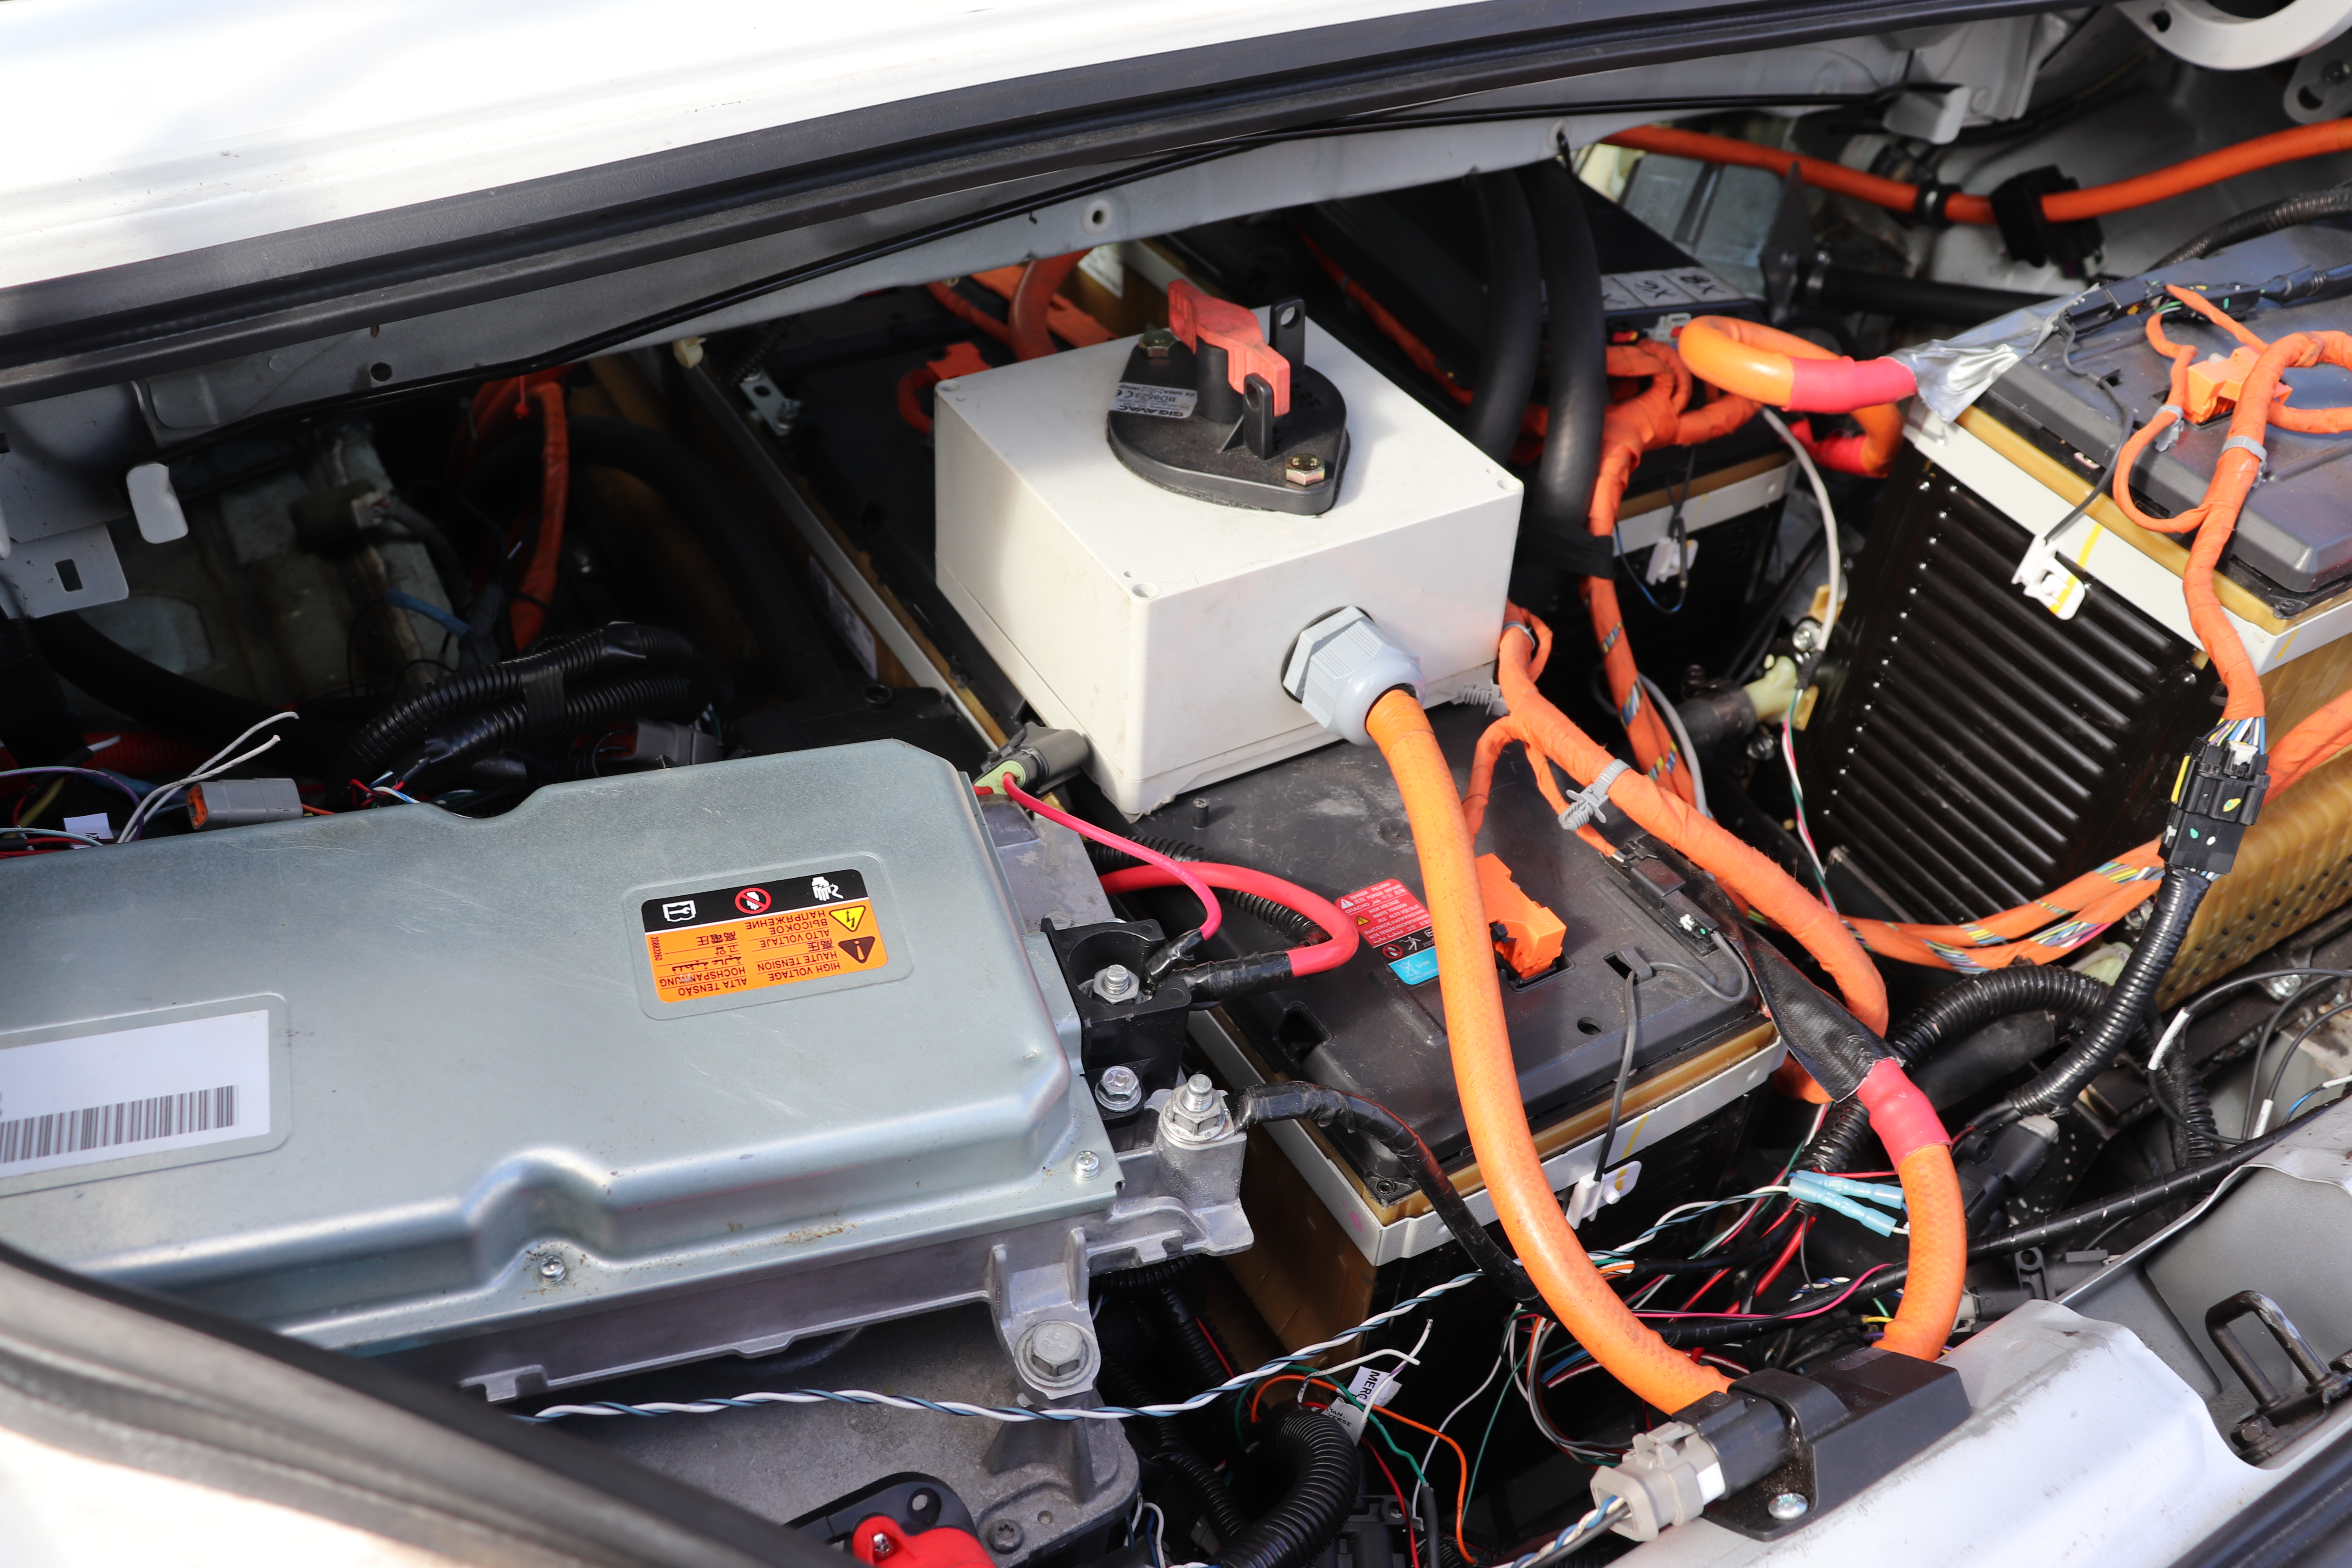 A Tesla Powered Honda S2000 Runs Quarter Mile In 10 Seconds Electrek Wiring Garage For The Reason Behind Using Chevy Volt Batteries Is Because Of Their Higher Discharge Rate Than Battery Modules